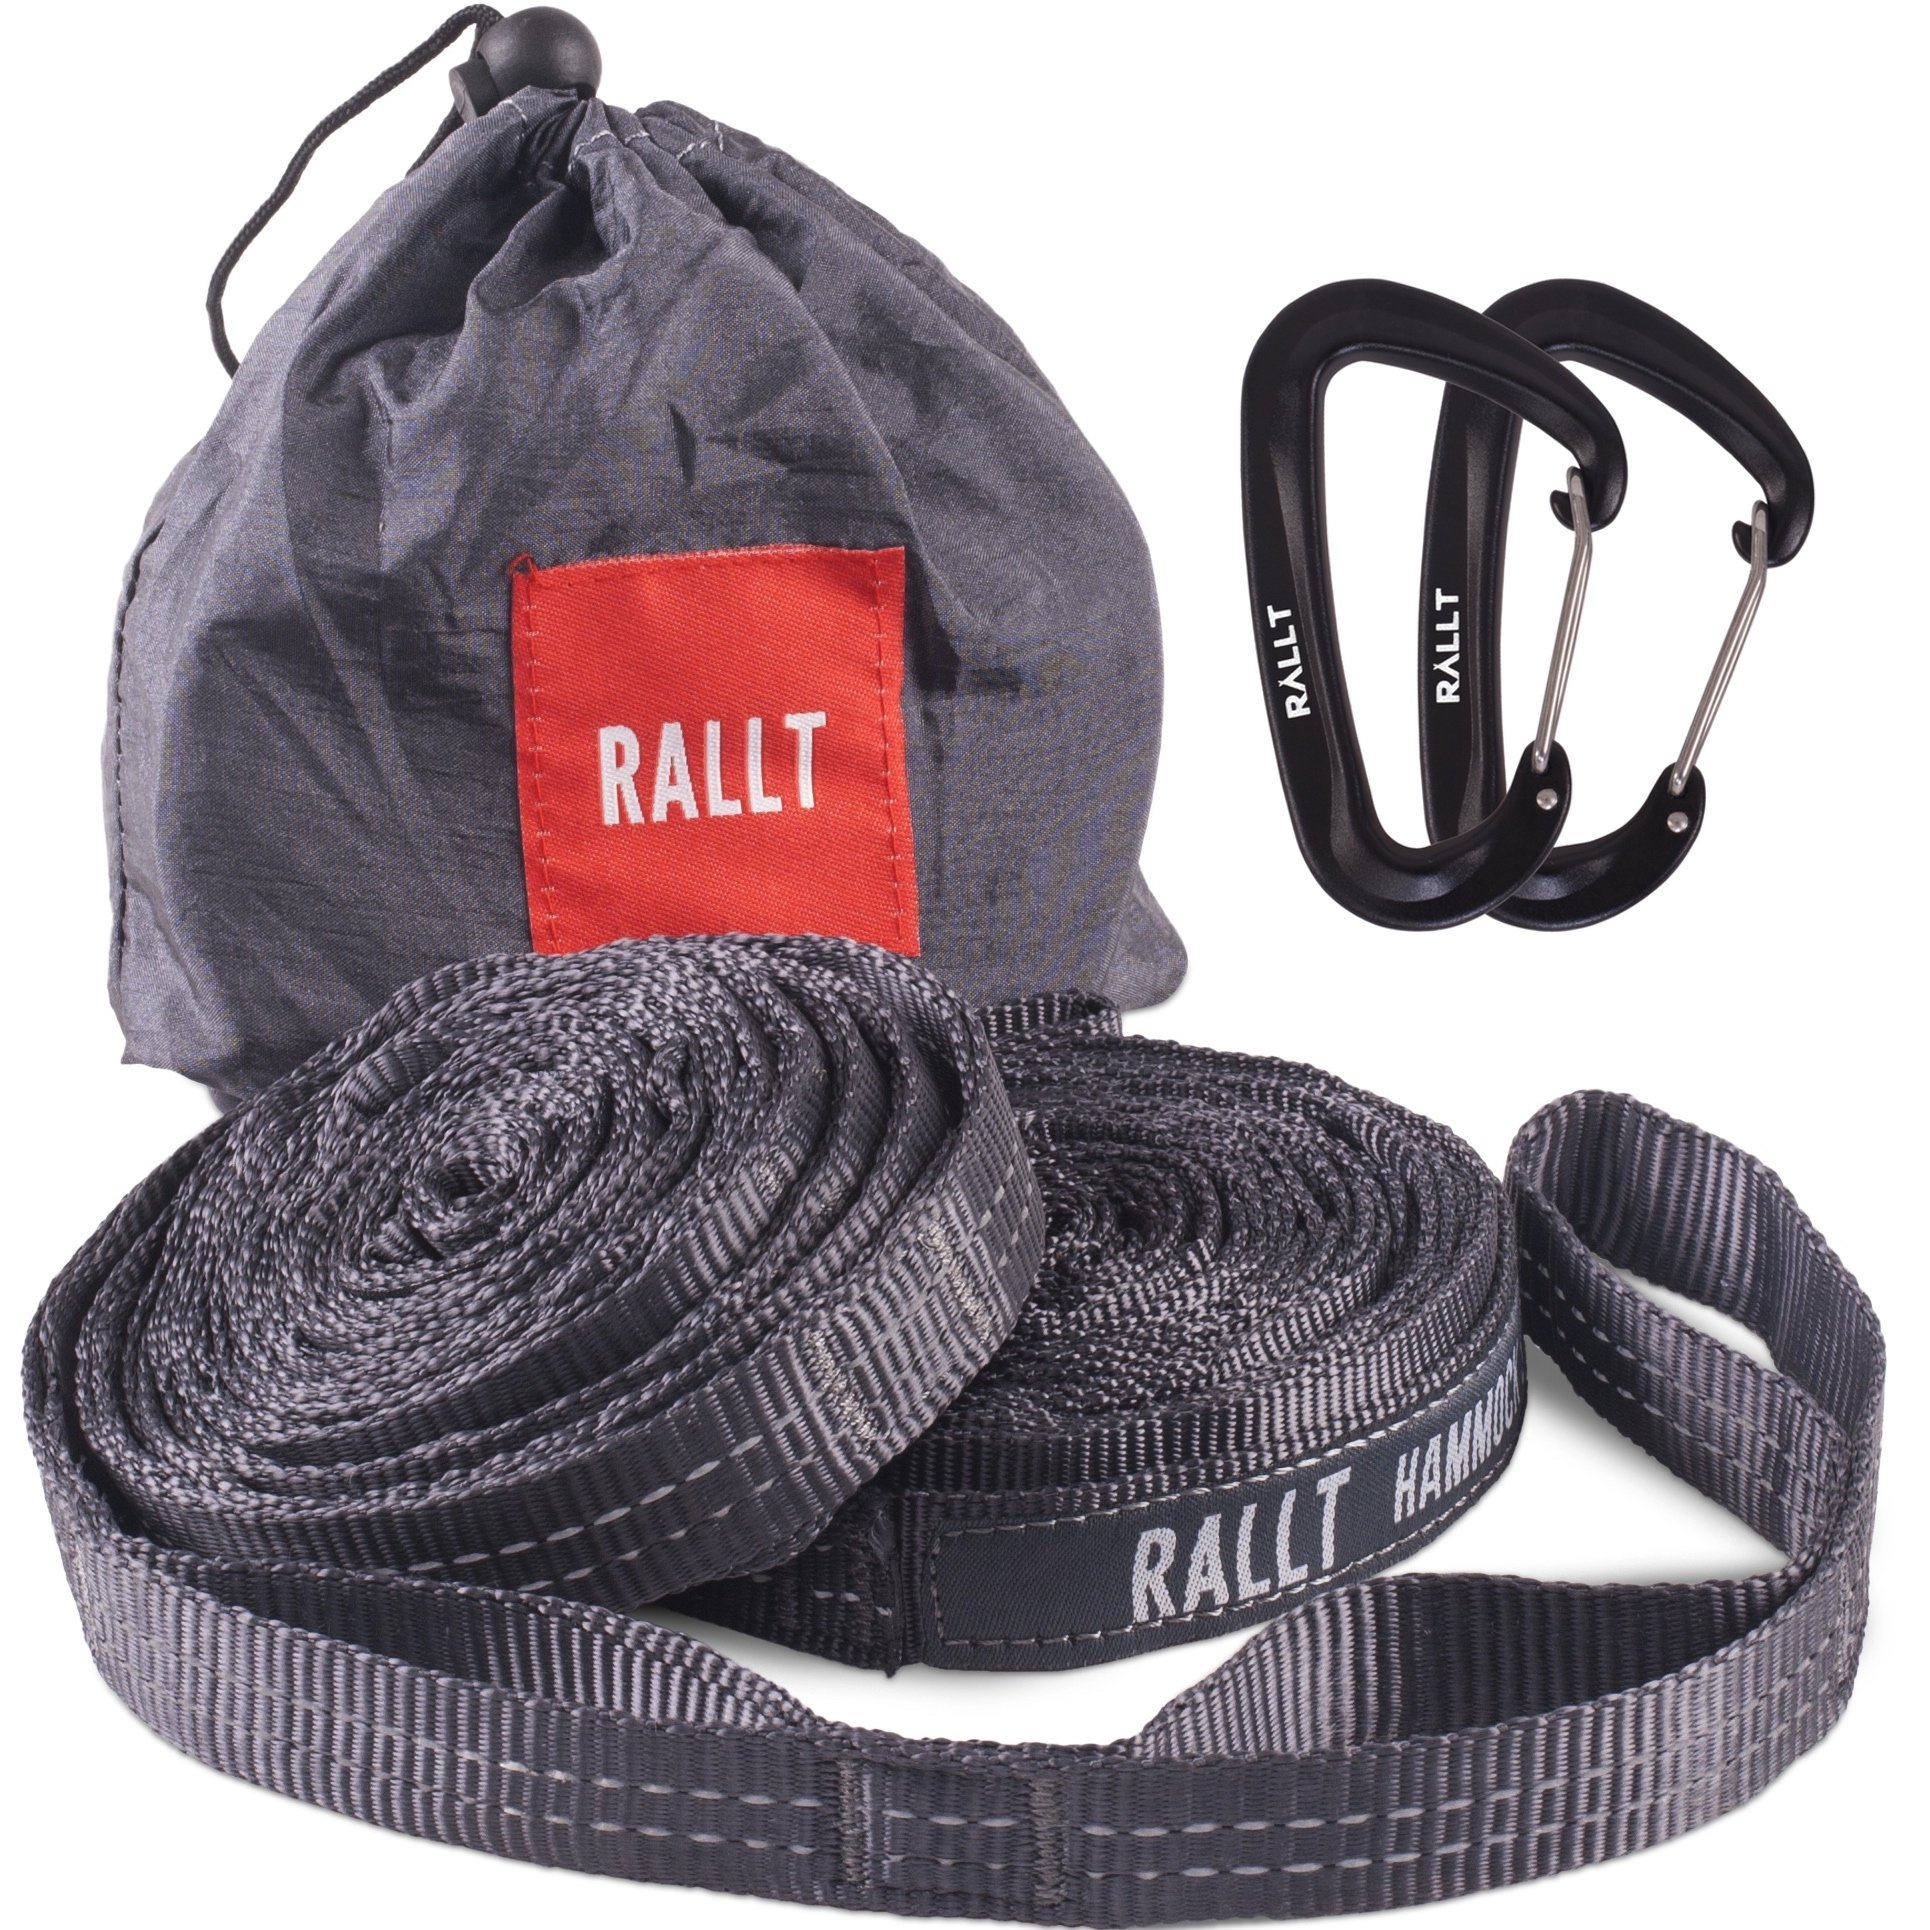 Rallt Hammock Tree Straps - 2000+ LB Breaking Strength, 20 Feet Long, 36 Loops. 100% No Stretch Polyester Adjustable Suspension Straps Like Python and ENO Atlas Straps (With Carabiners)